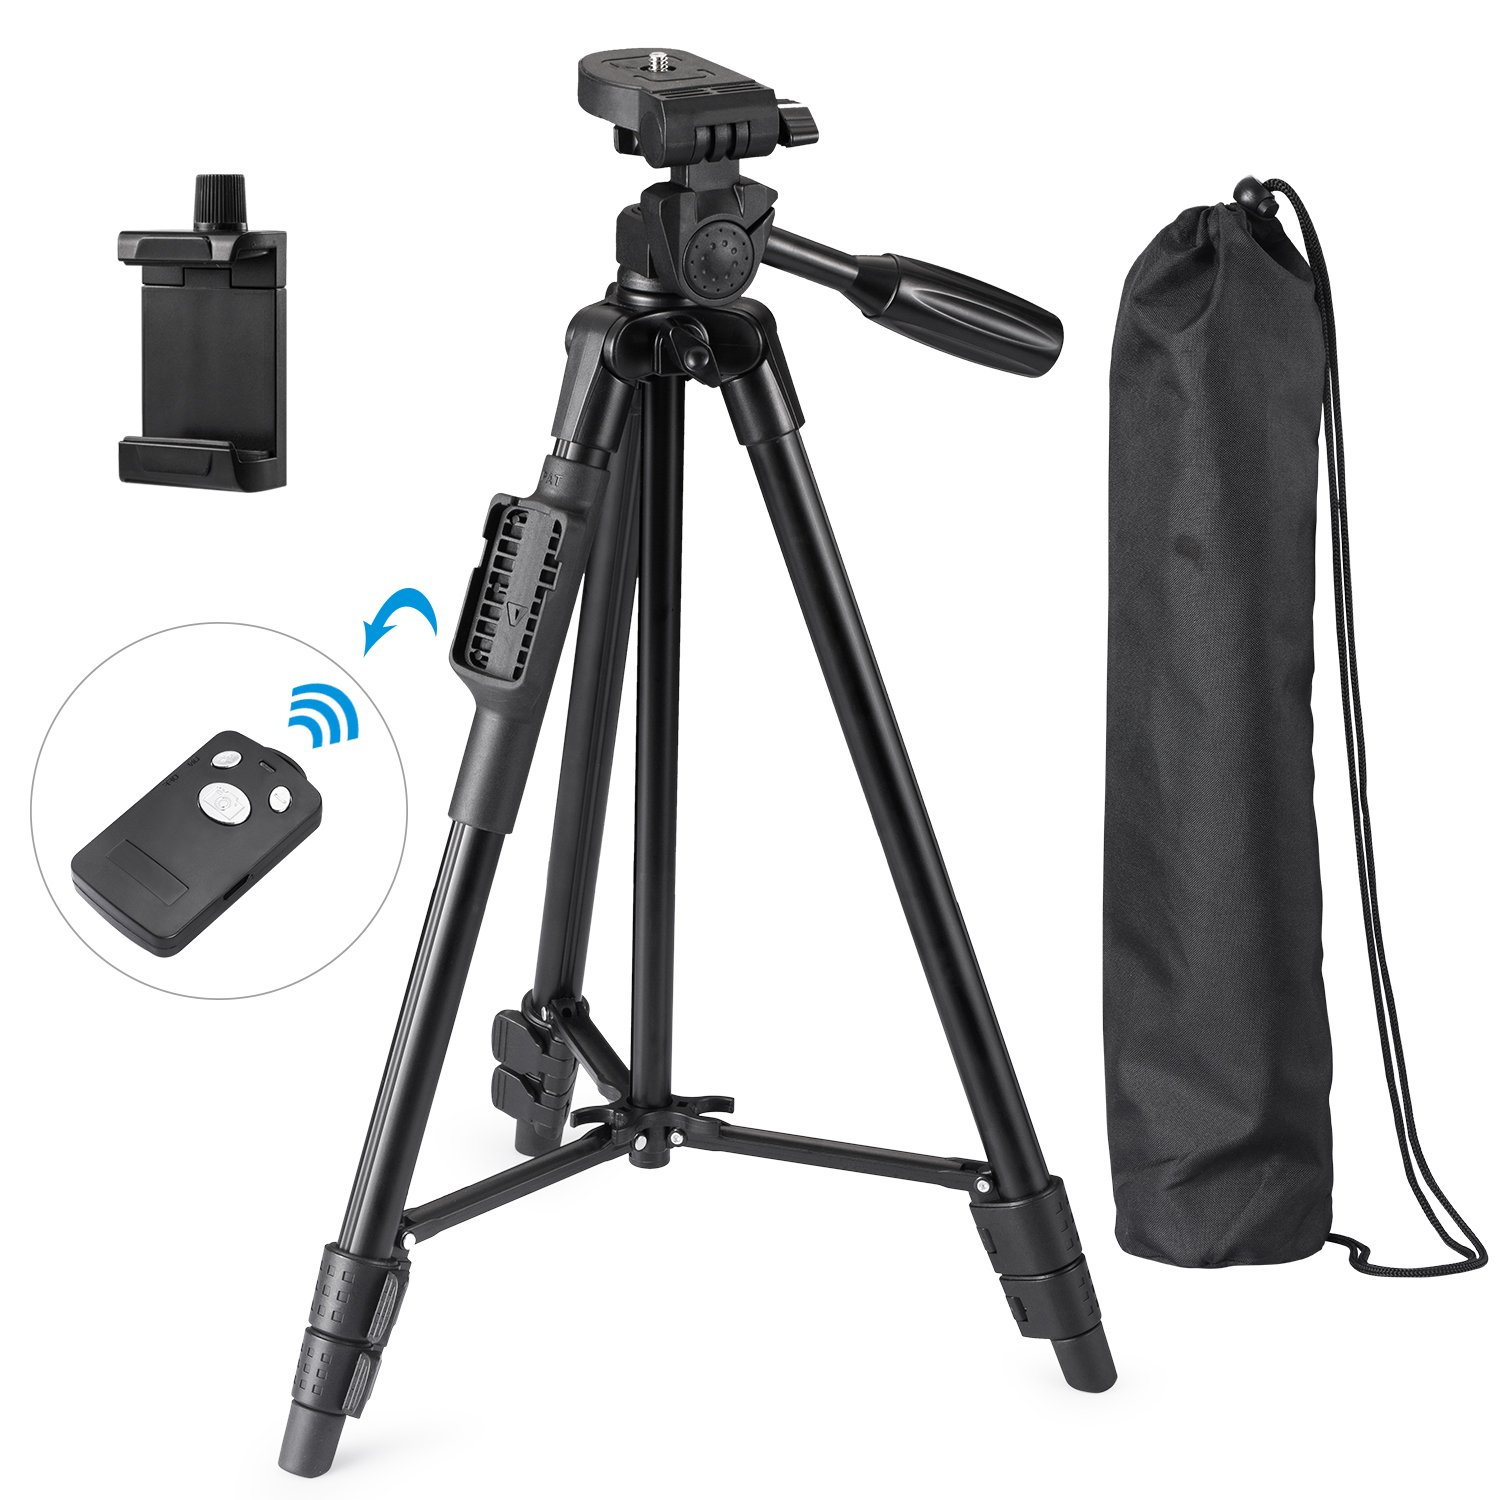 Eocean Tripod, 50 Inch Aluminum Tripod, Video Tripod for Cellphone, Camera, Universal Tripod with Wireless Remote, Compatible with iPhone Xs/Xr/X/8/8 Plus/Samsung Galaxy/Google/GoPro Hero by Eocean